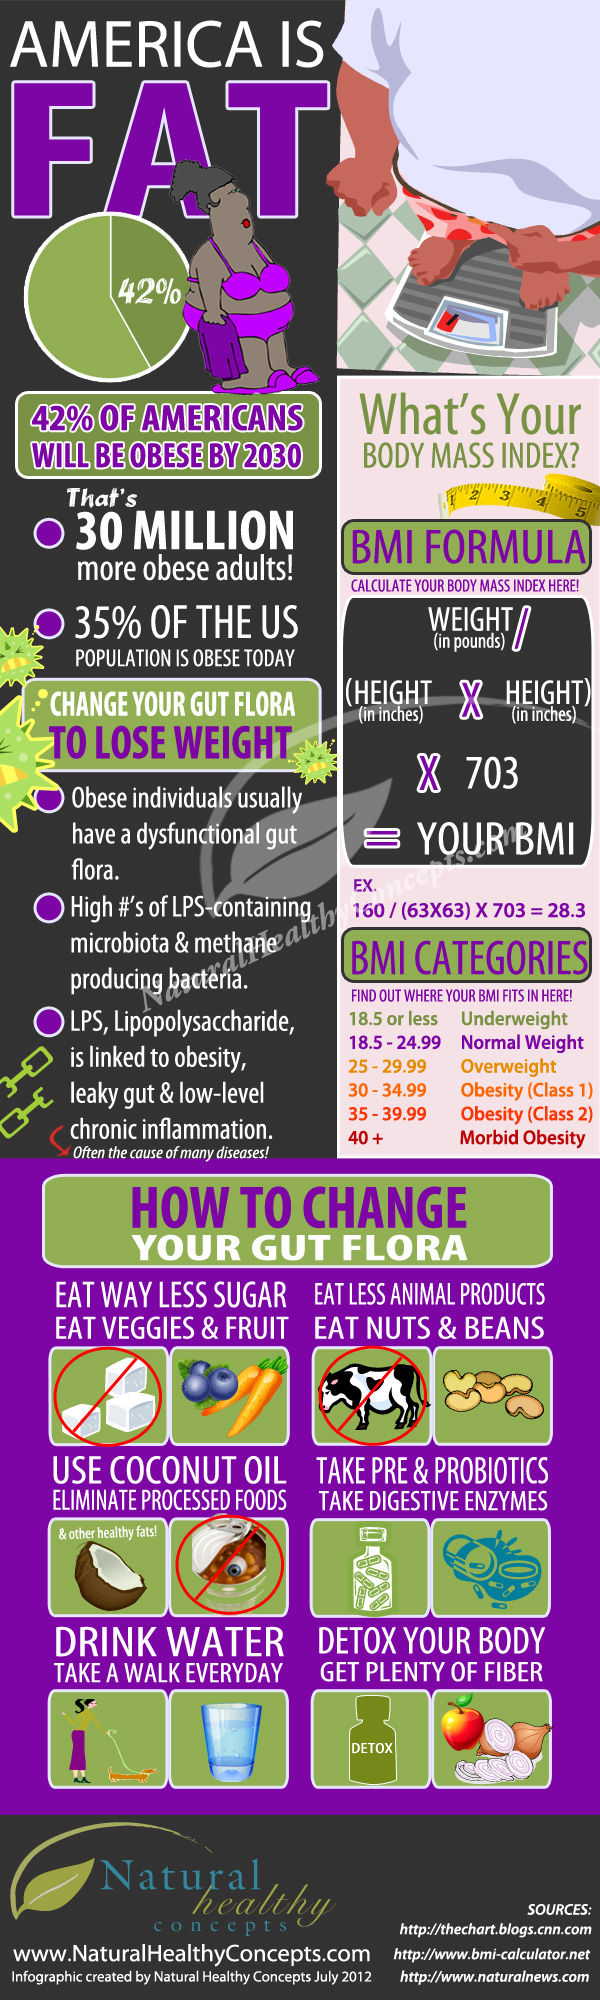 Is America Fat? Infographic